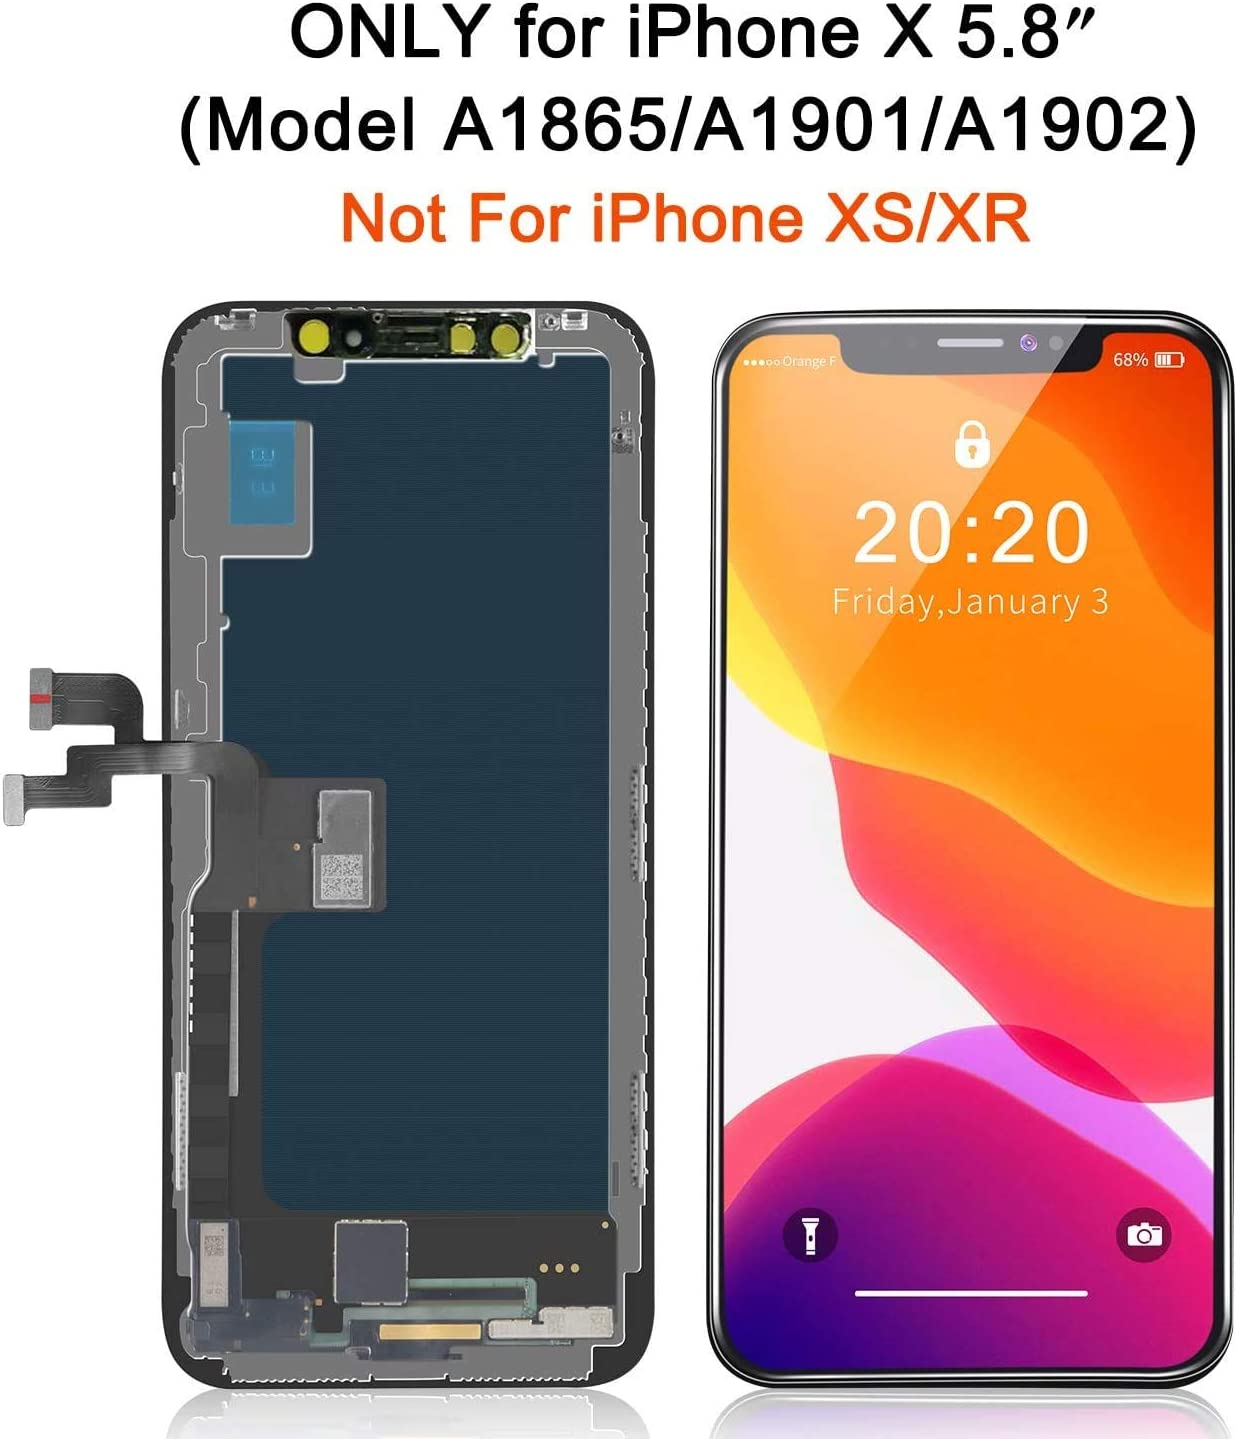 3D Touch Screen Display Digitizer Assembly with Repair Tool Kit Tempered Glass Compatible with iPhone X LCD Screen Replacement 5.8 Inch Waterproof Frame Adhesive Sticker Model A1865//A1901//A1902